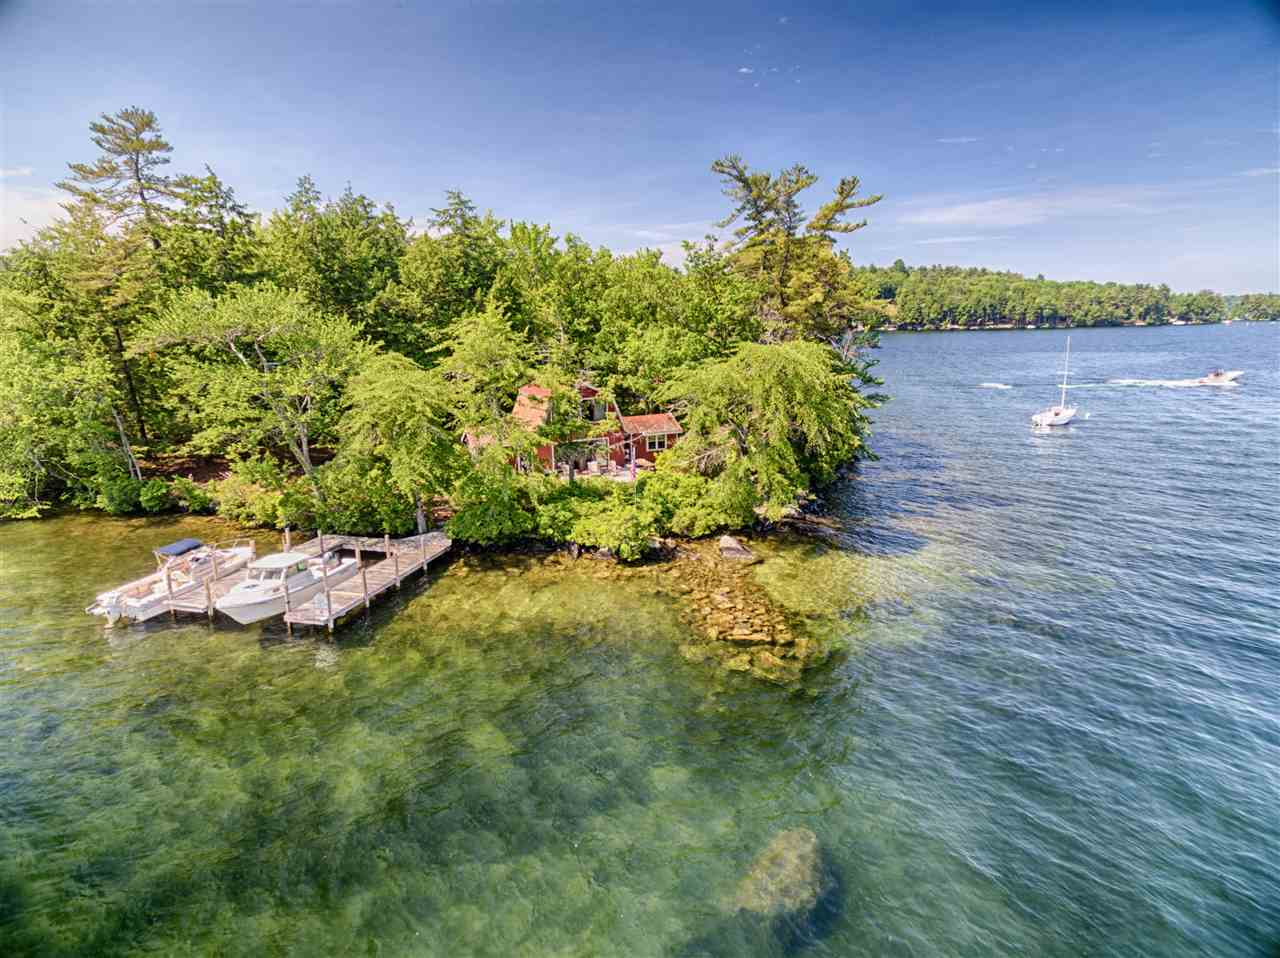 MLS 4702497: 1 Cow Island, Tuftonboro NH